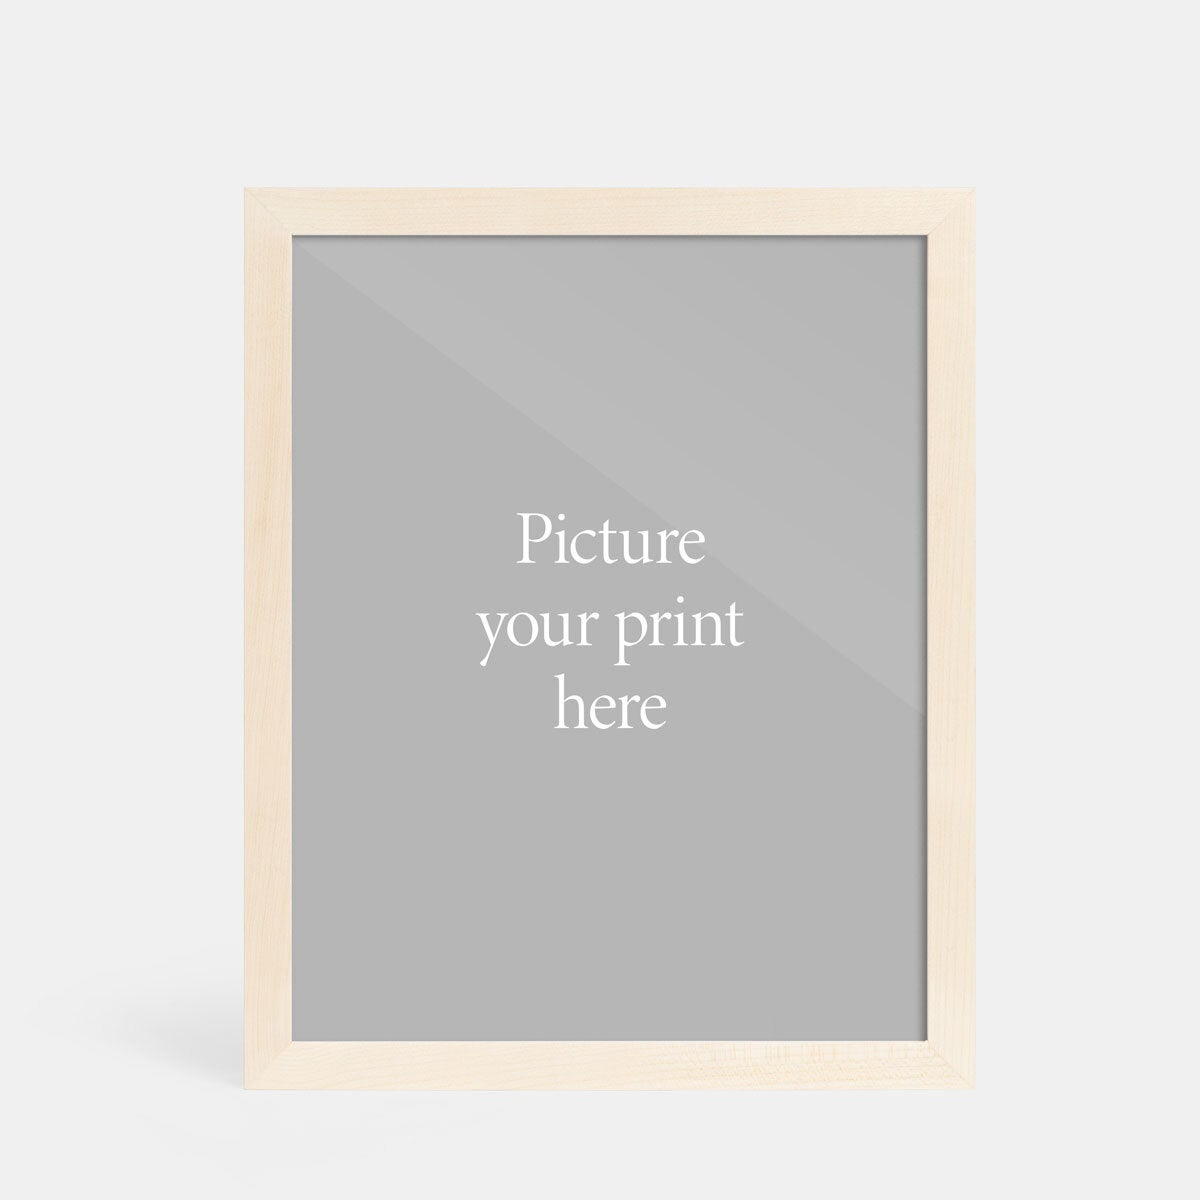 Gallery Frame Without Print